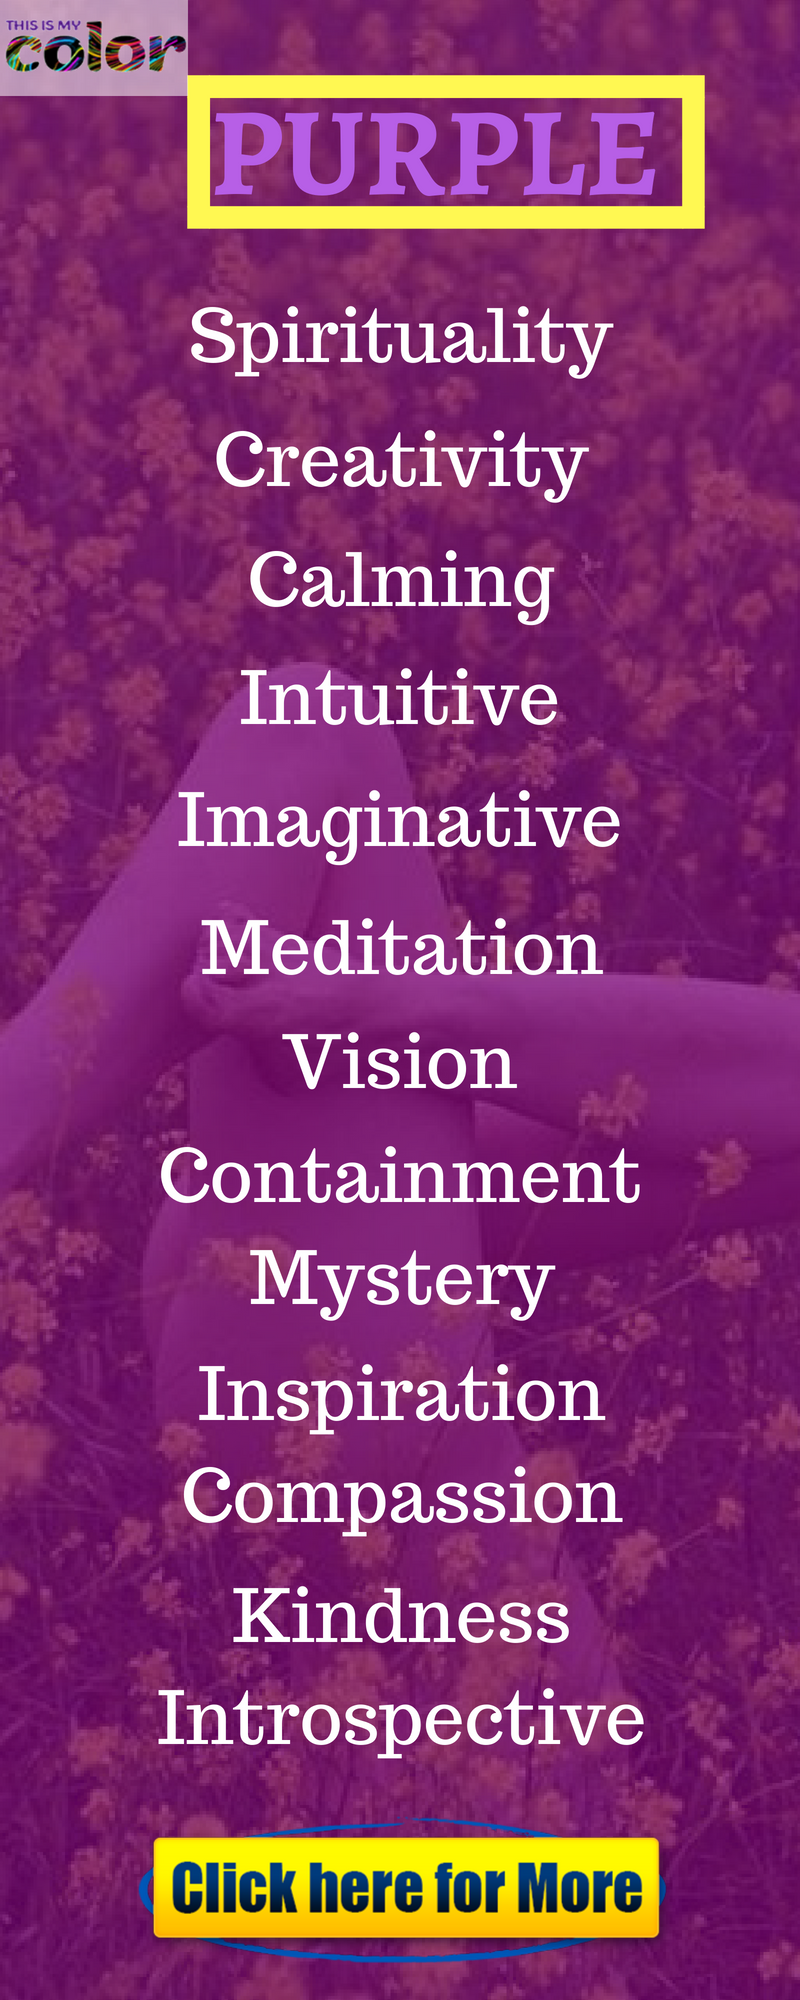 Learn The Purple Color Meaning And Its Meaning Of Colors In Personality Color Meanings Purple Color Meaning Healing